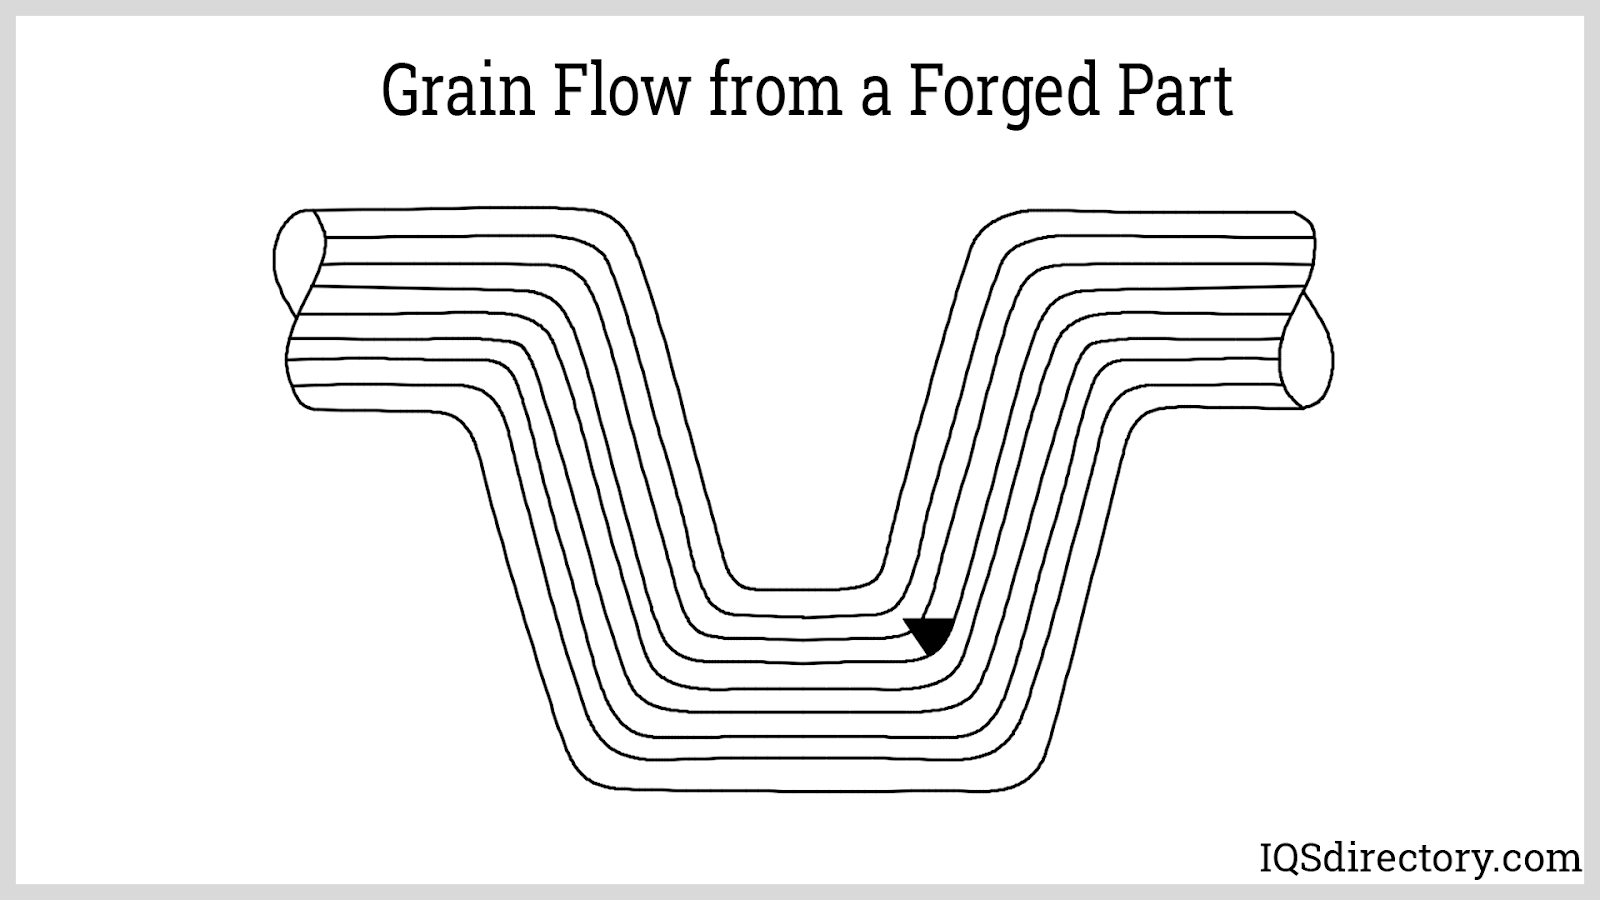 Grain Flow from a Forged Part